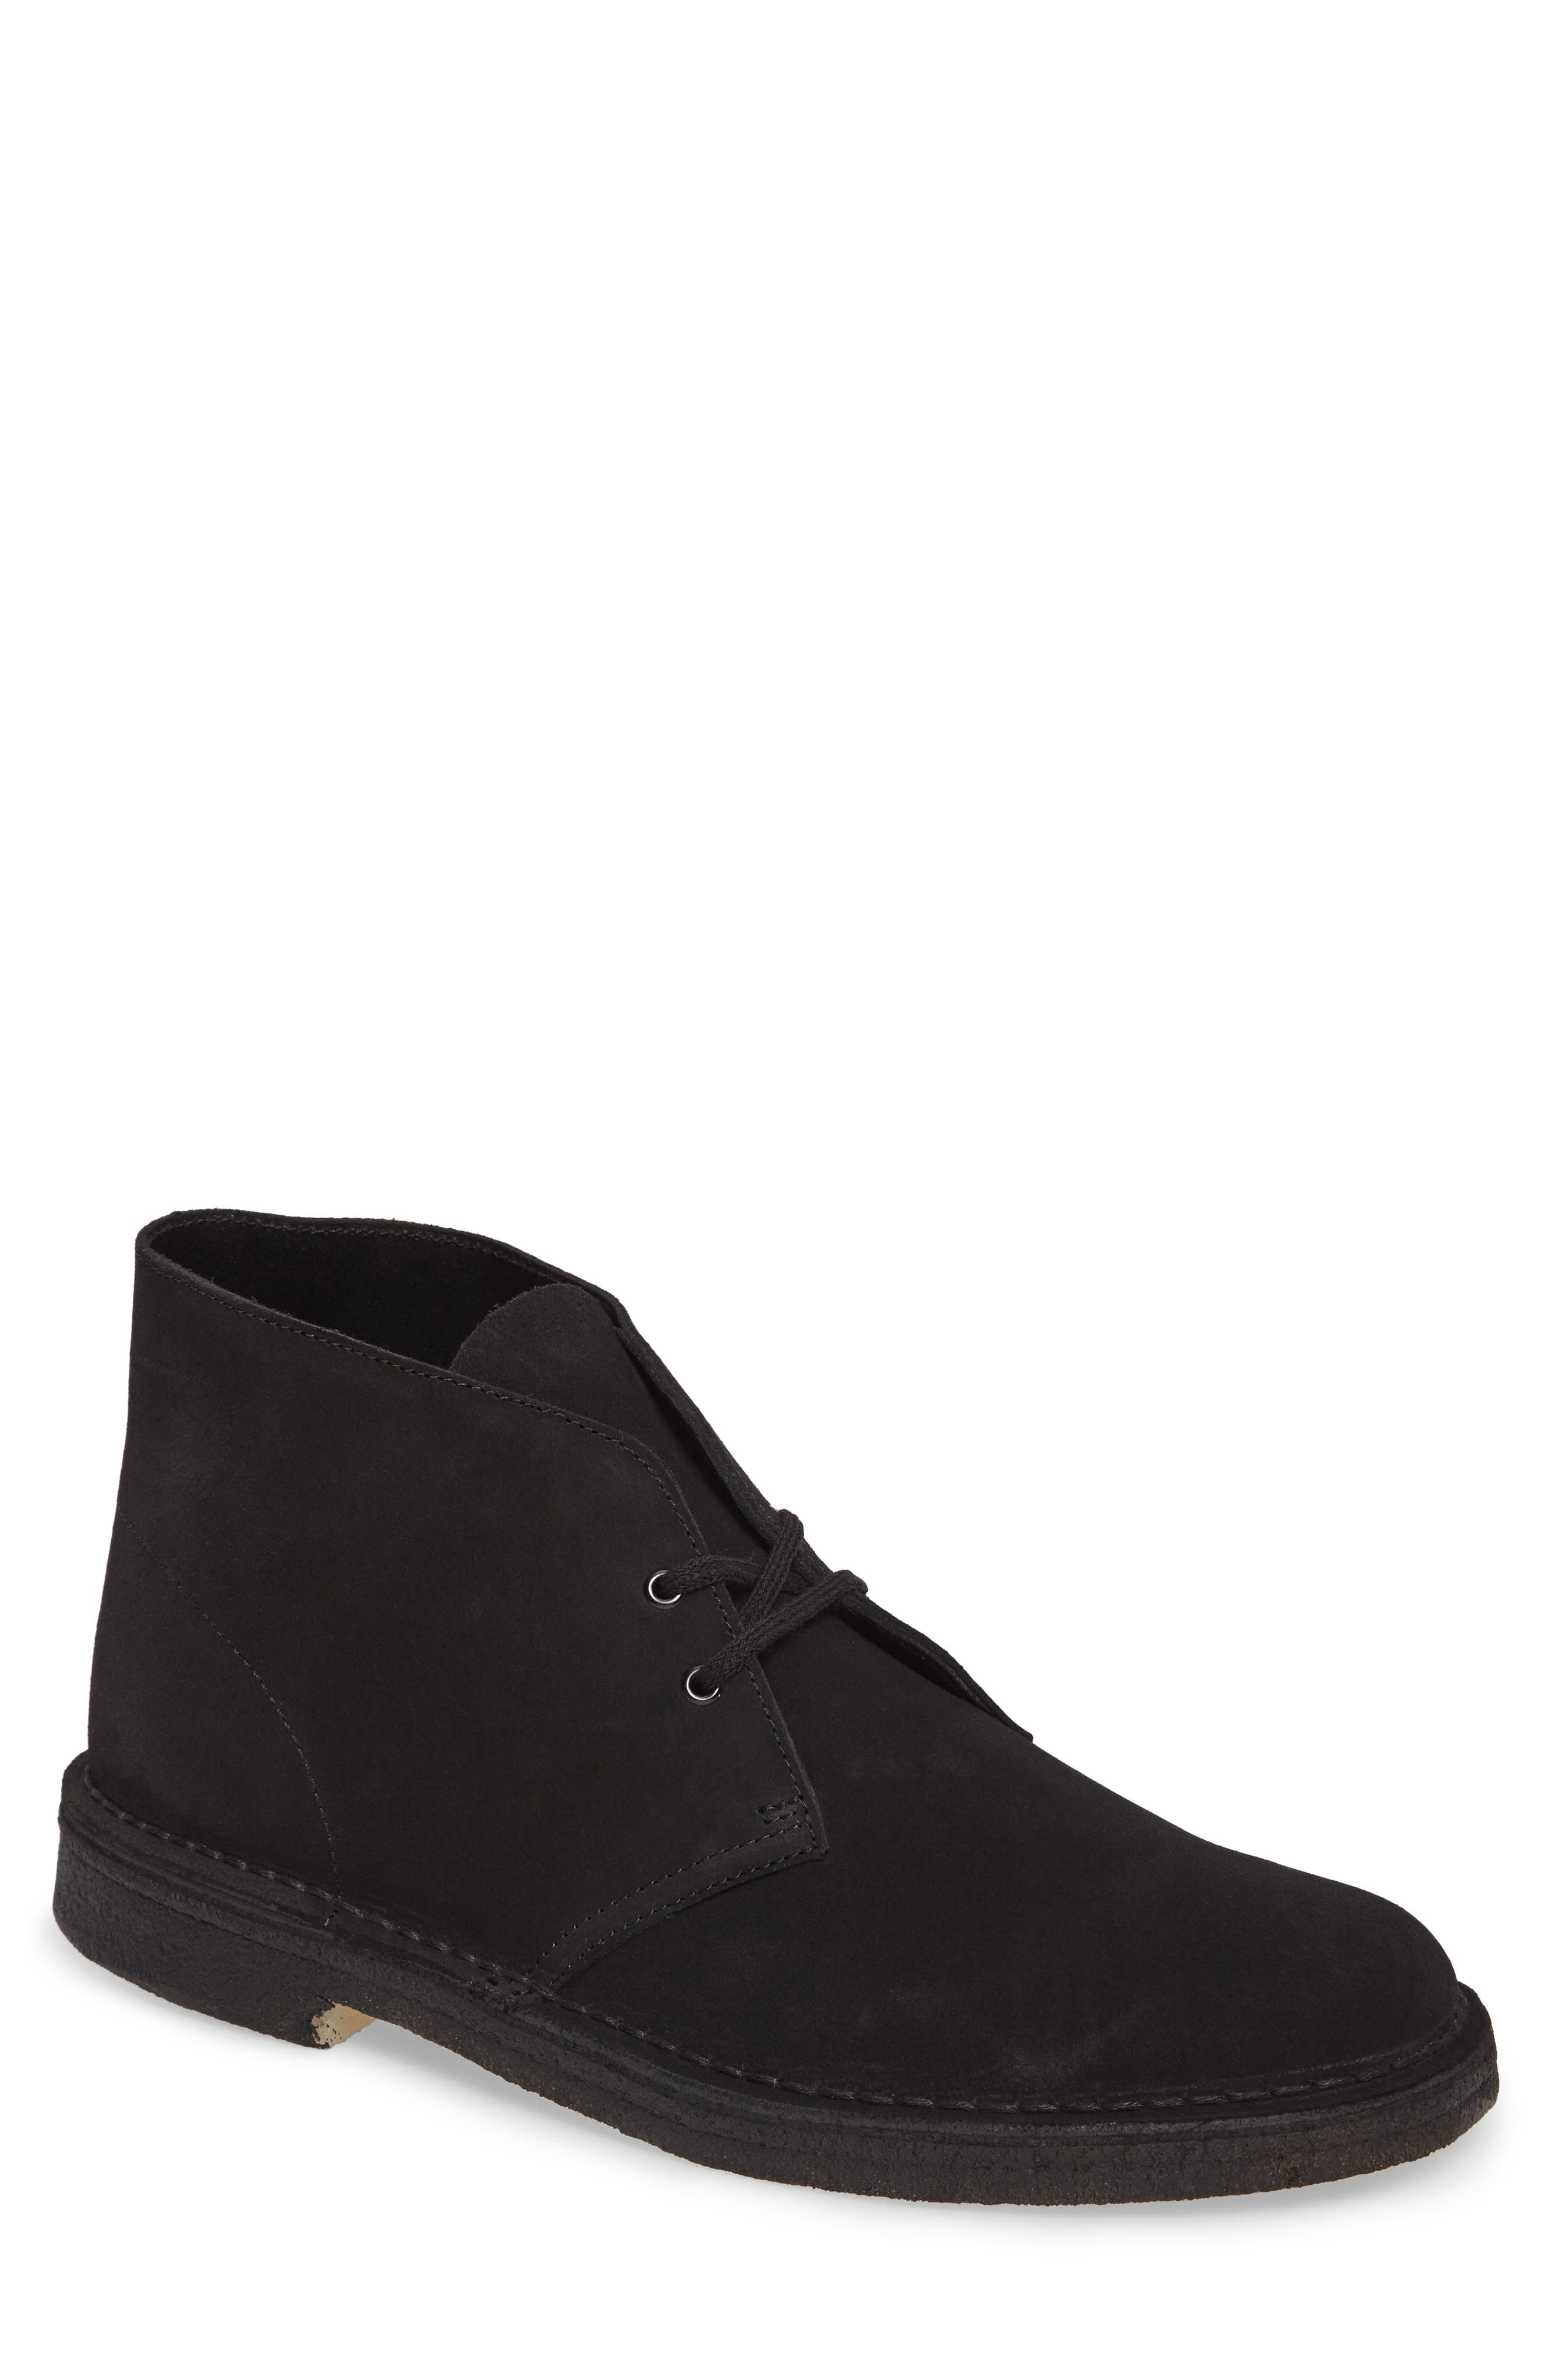 'Desert' Boot,                         Main,                         color, Black Suede